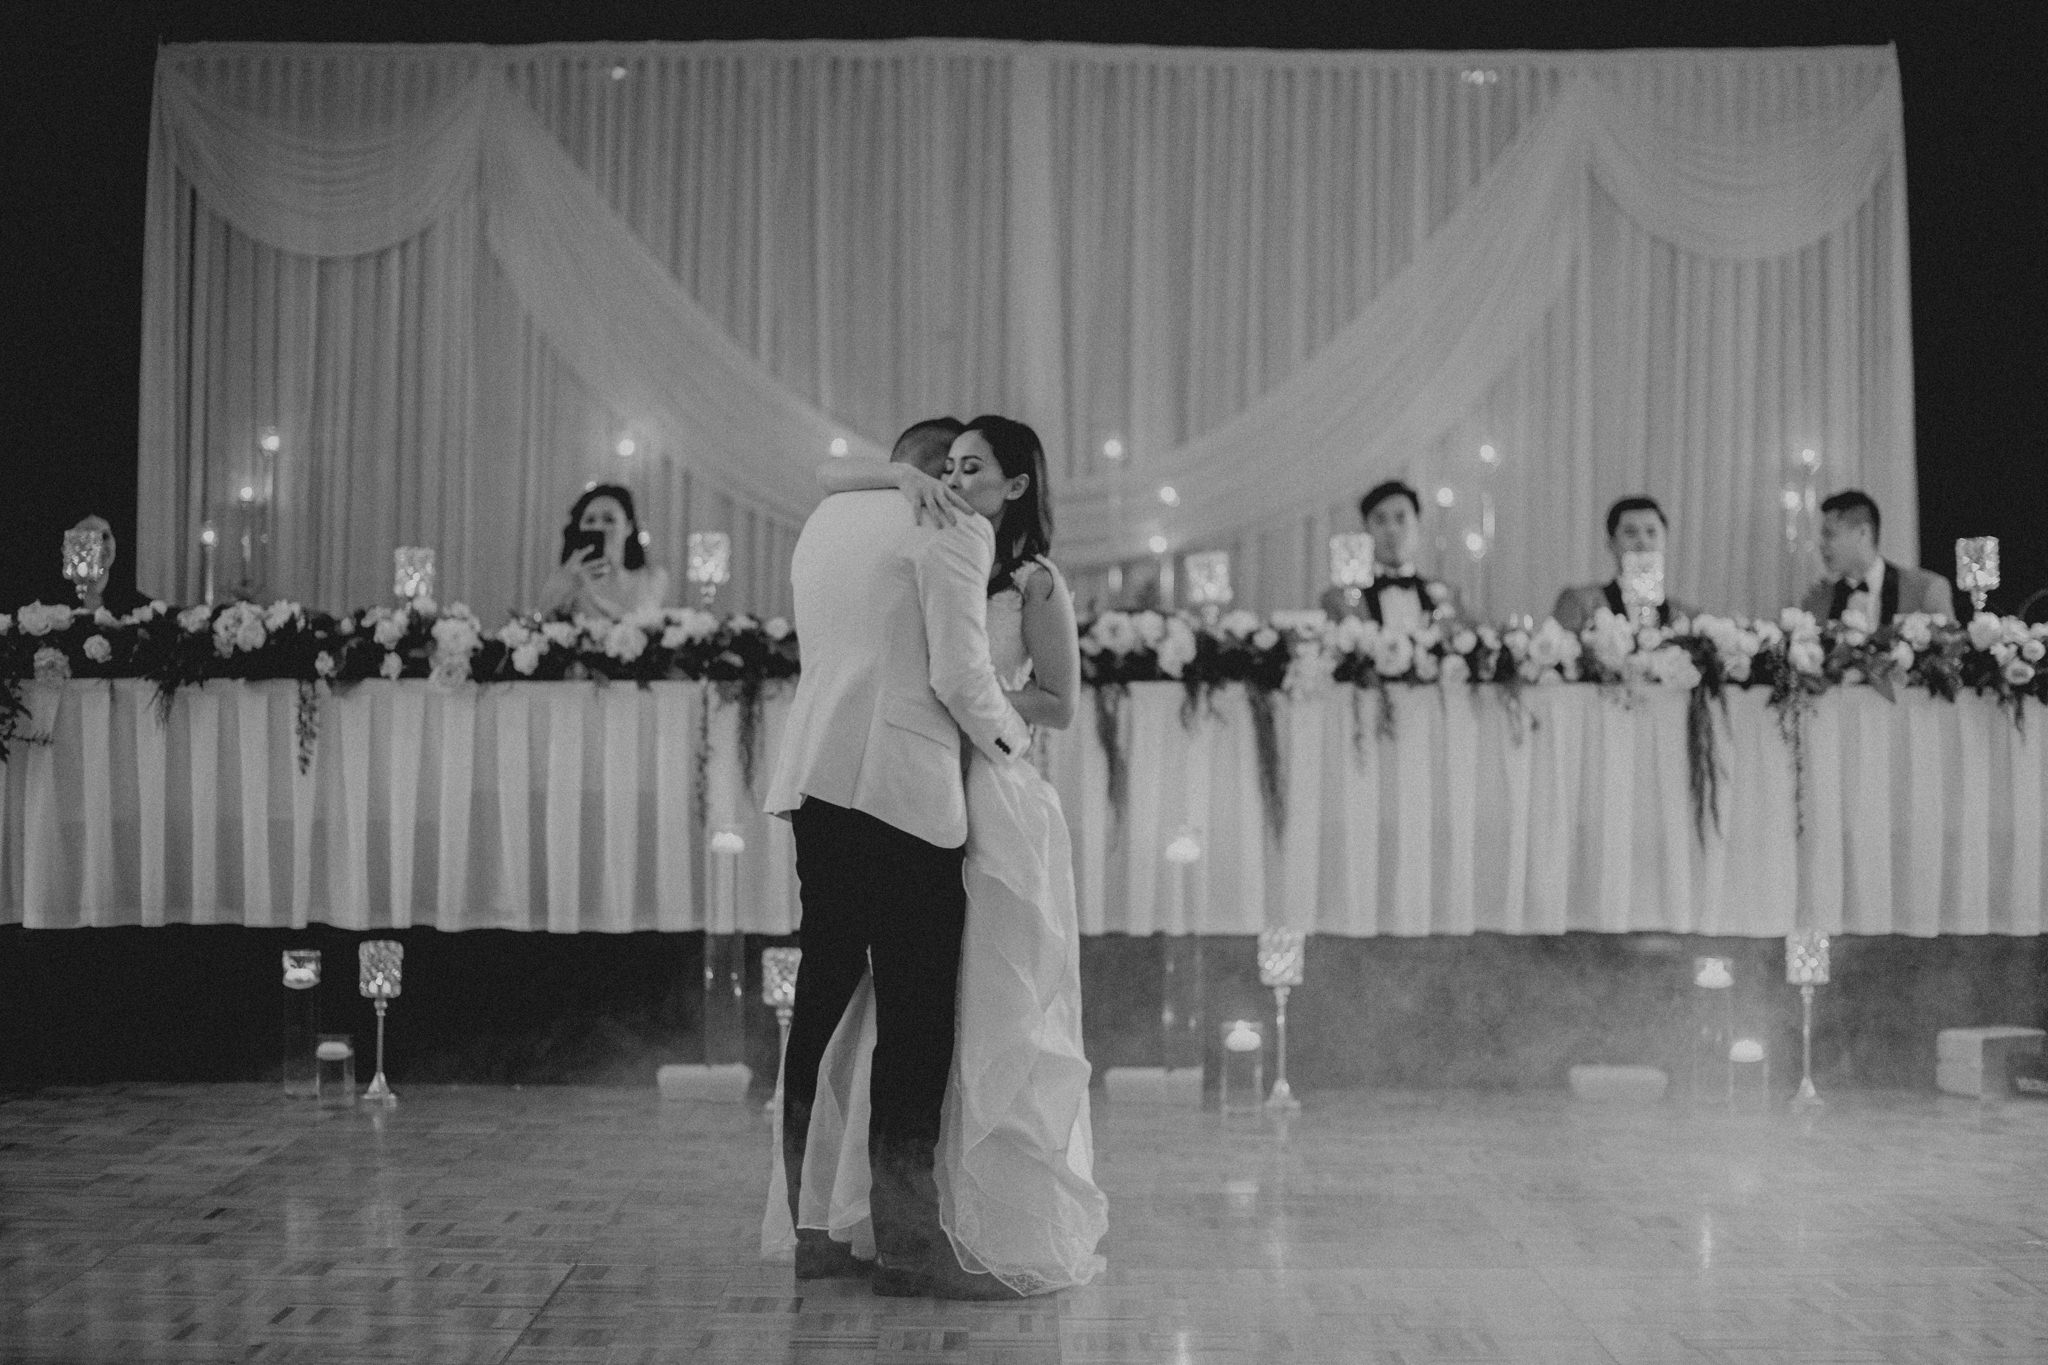 A bride and groom share an intimate hug on the dance floor in front of the bridal table